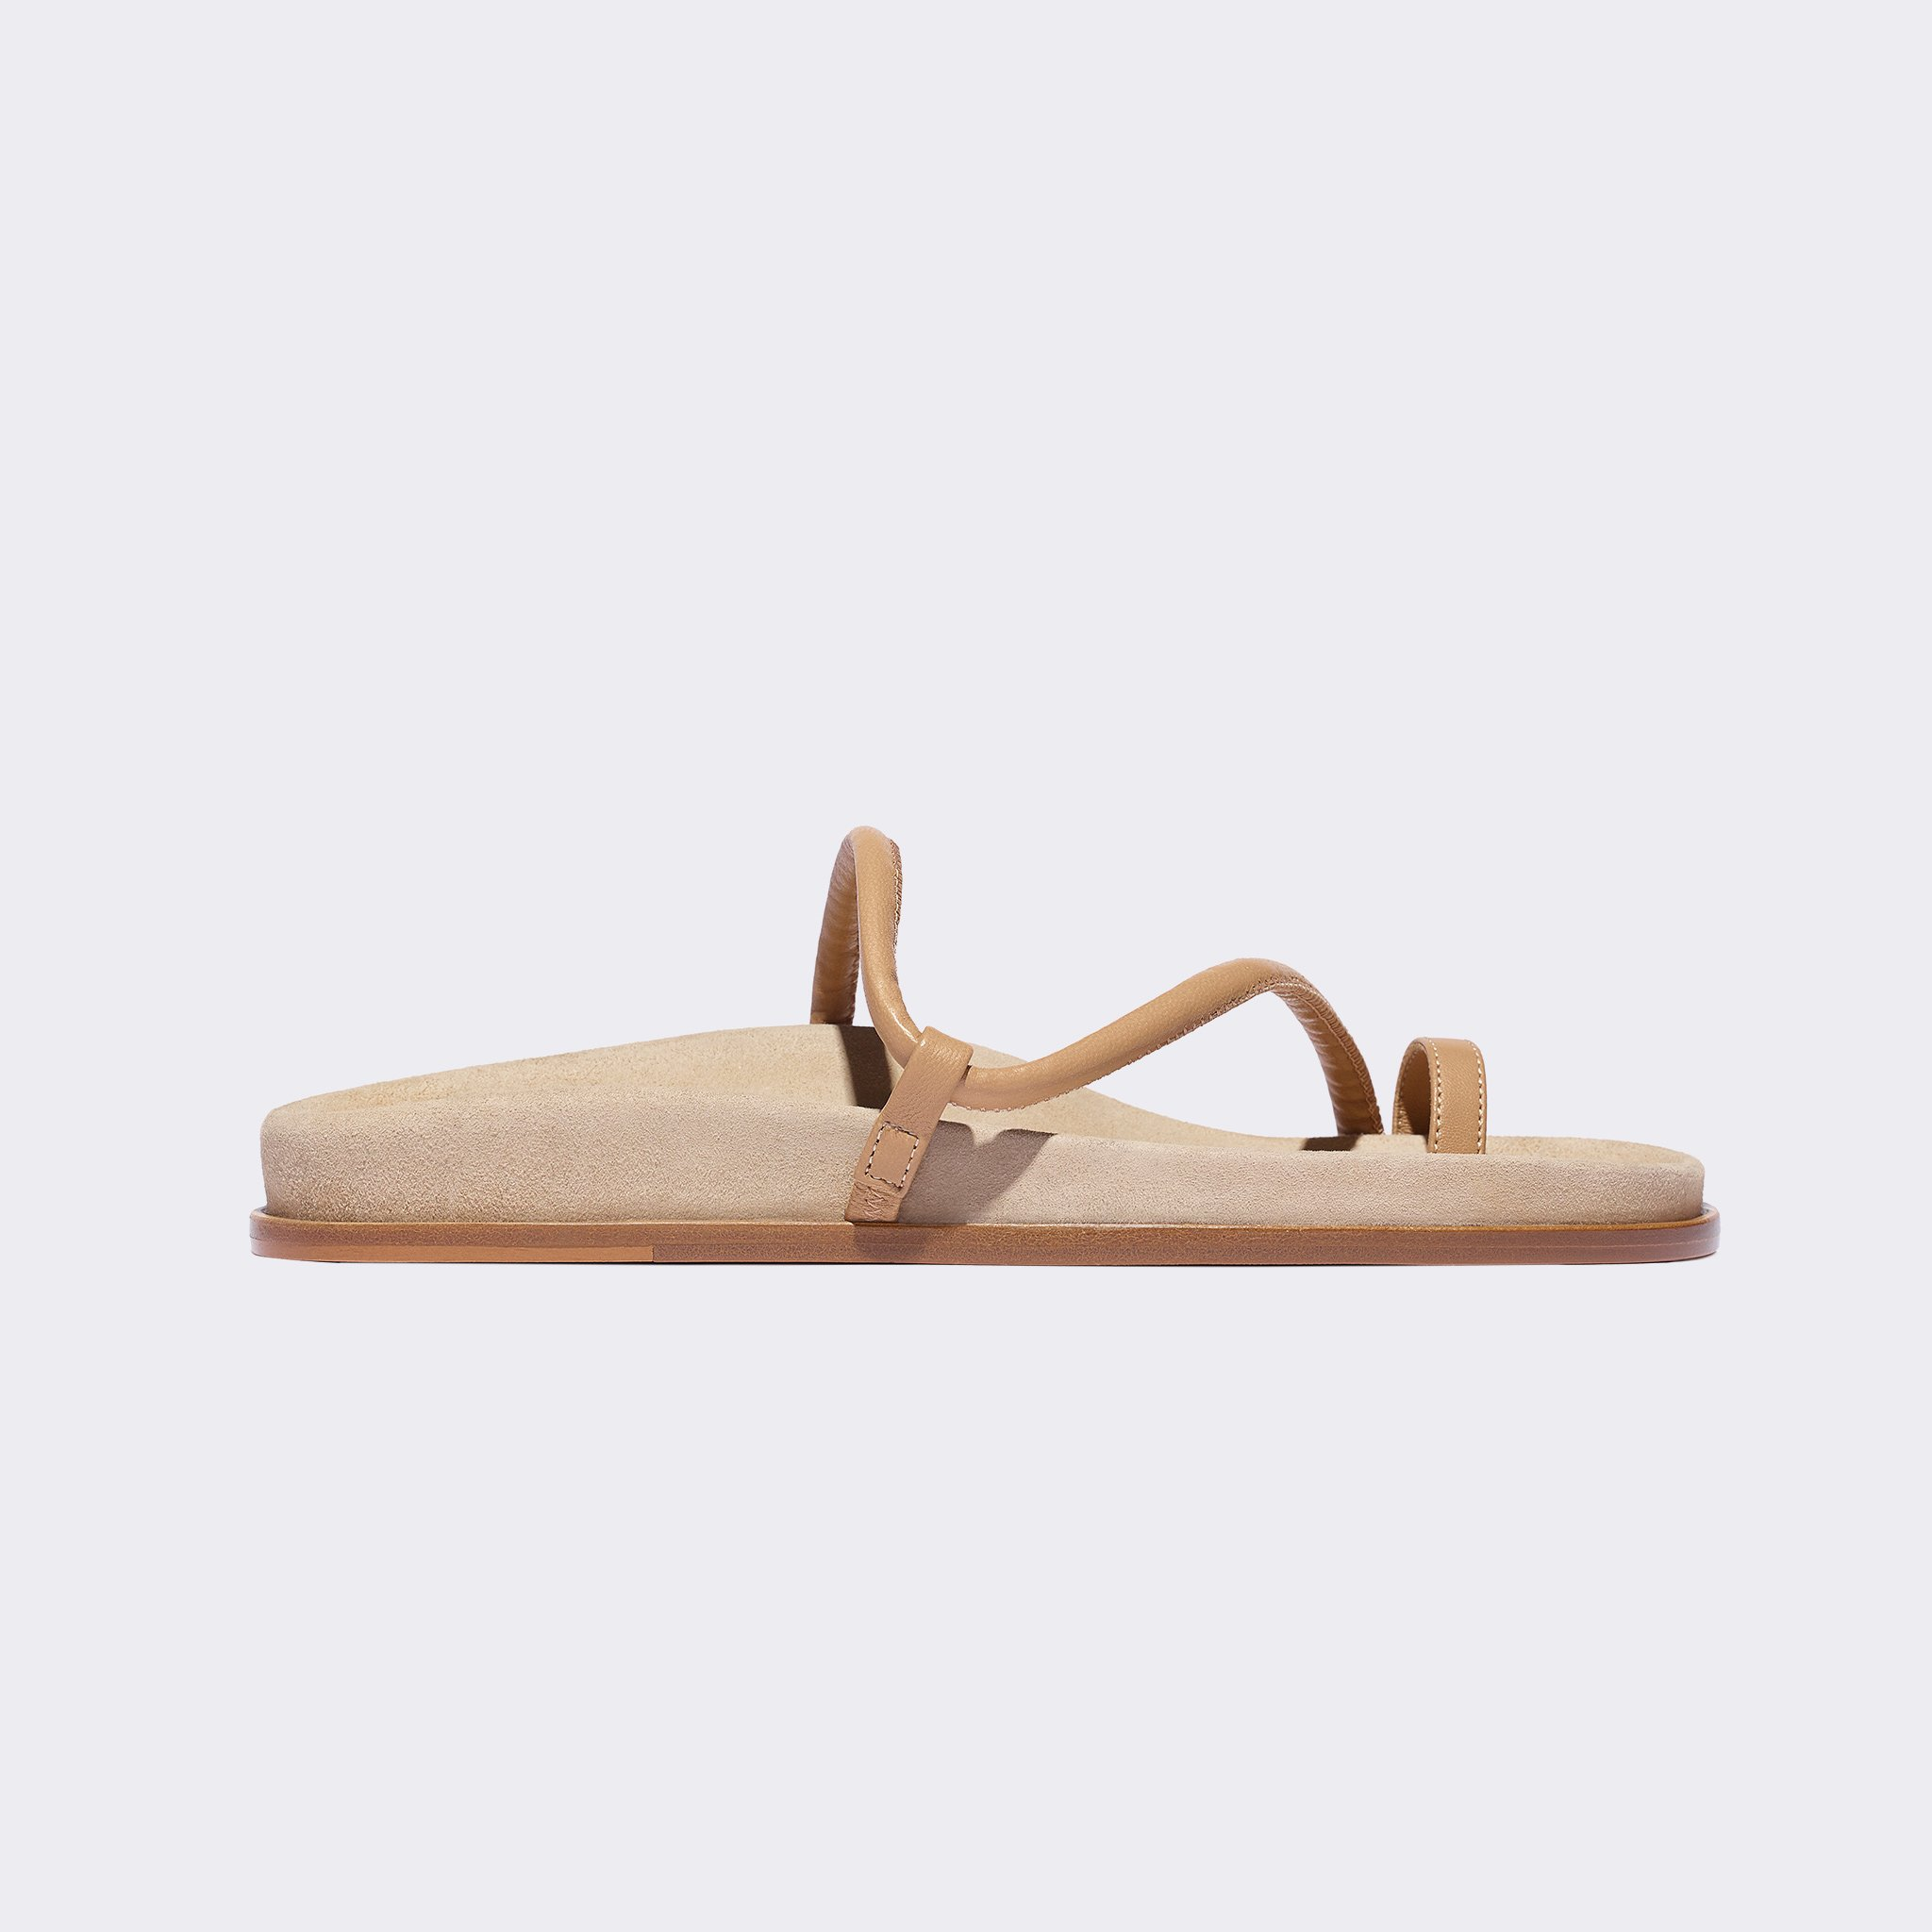 Bari in Tan by EMME PARSONS, available on emmeparsons.com for $395 Kendall Jenner Shoes Exact Product